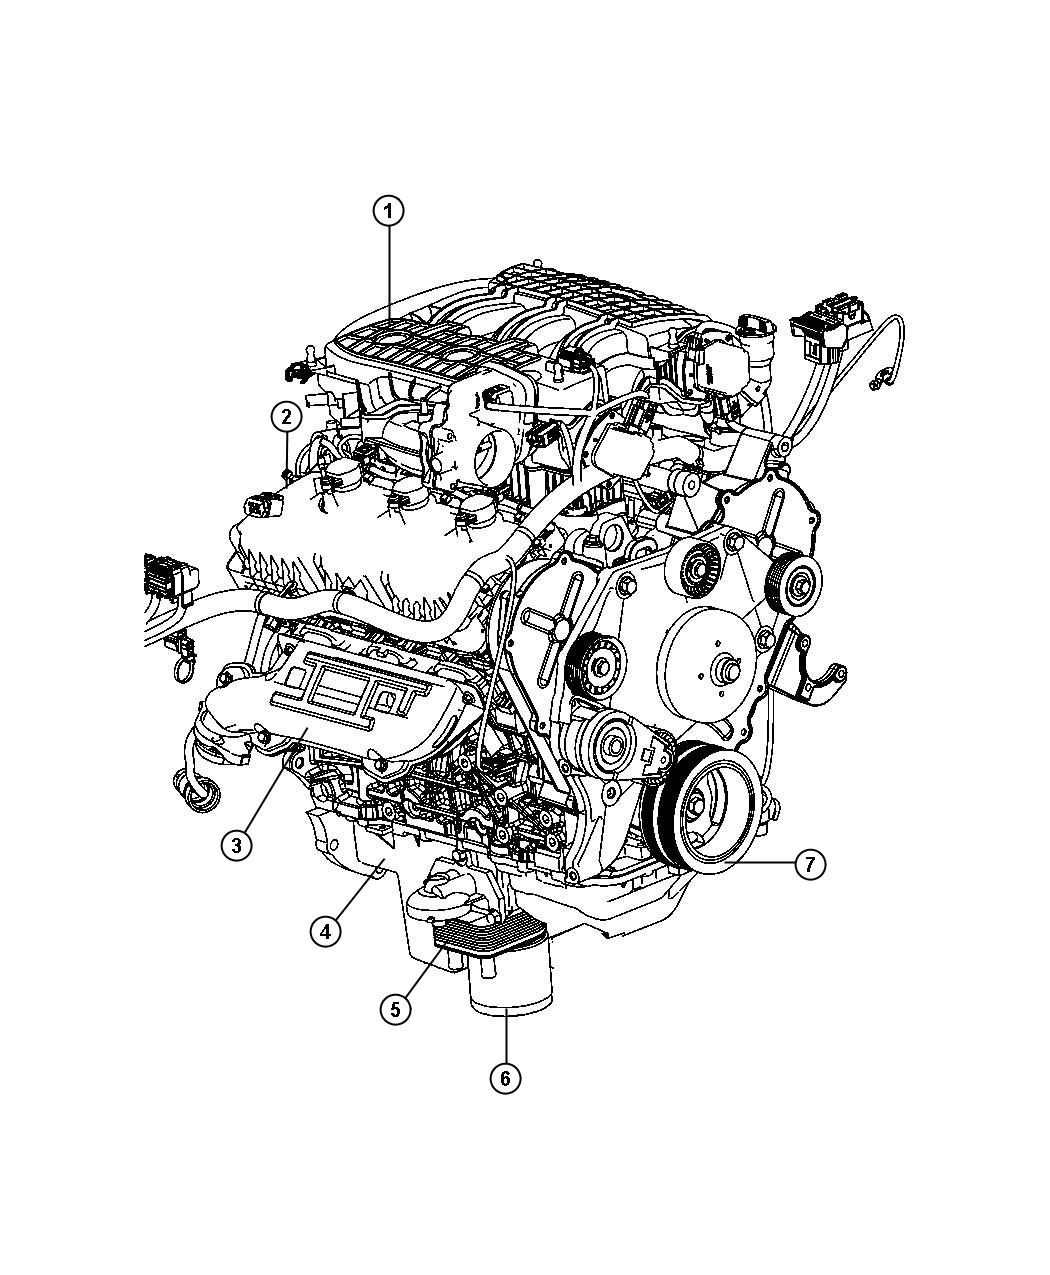 Dodge Nitro Engine Assembly And Identification 4 0l